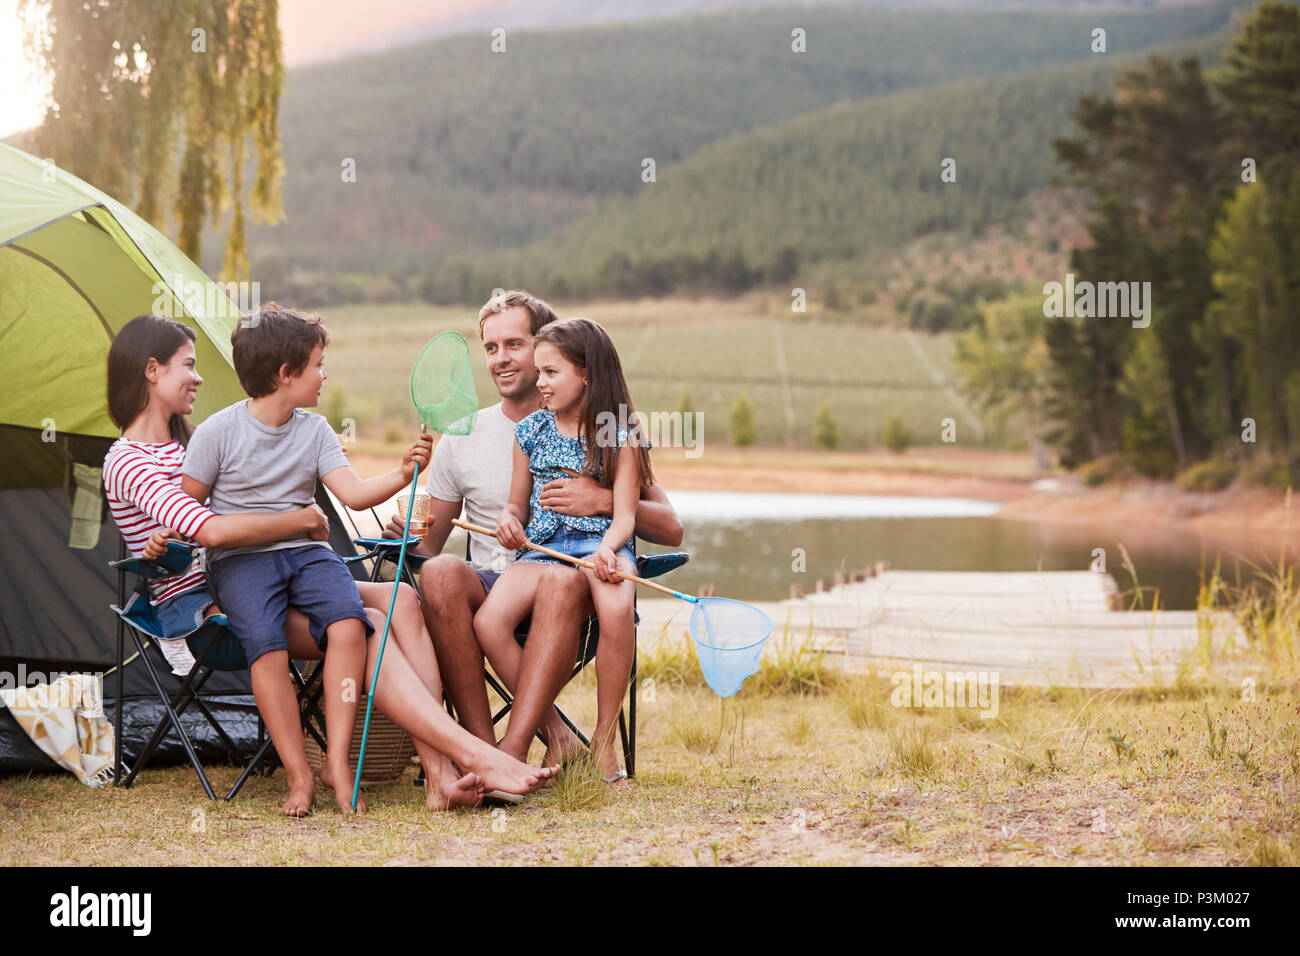 Family Enjoying Camping Vacation By Lake Together Stock Photo